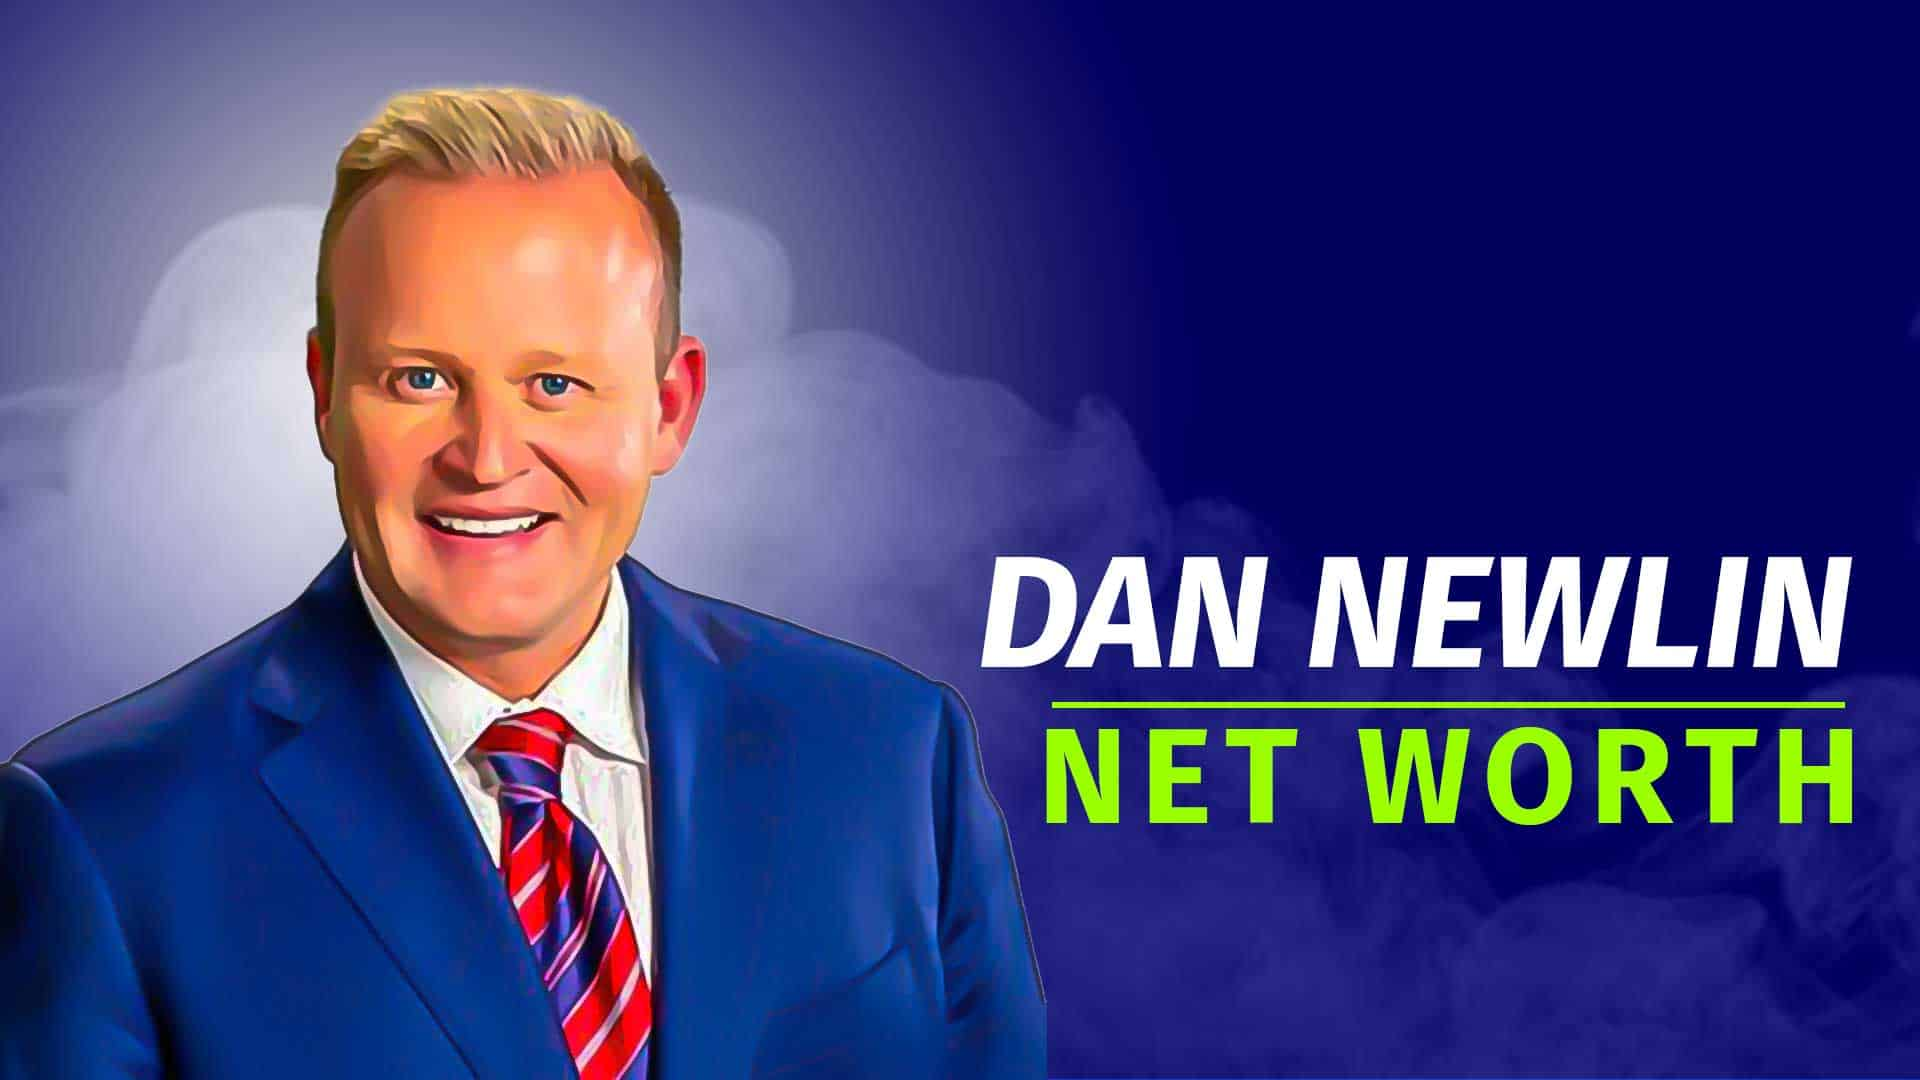 dan newlin net worth